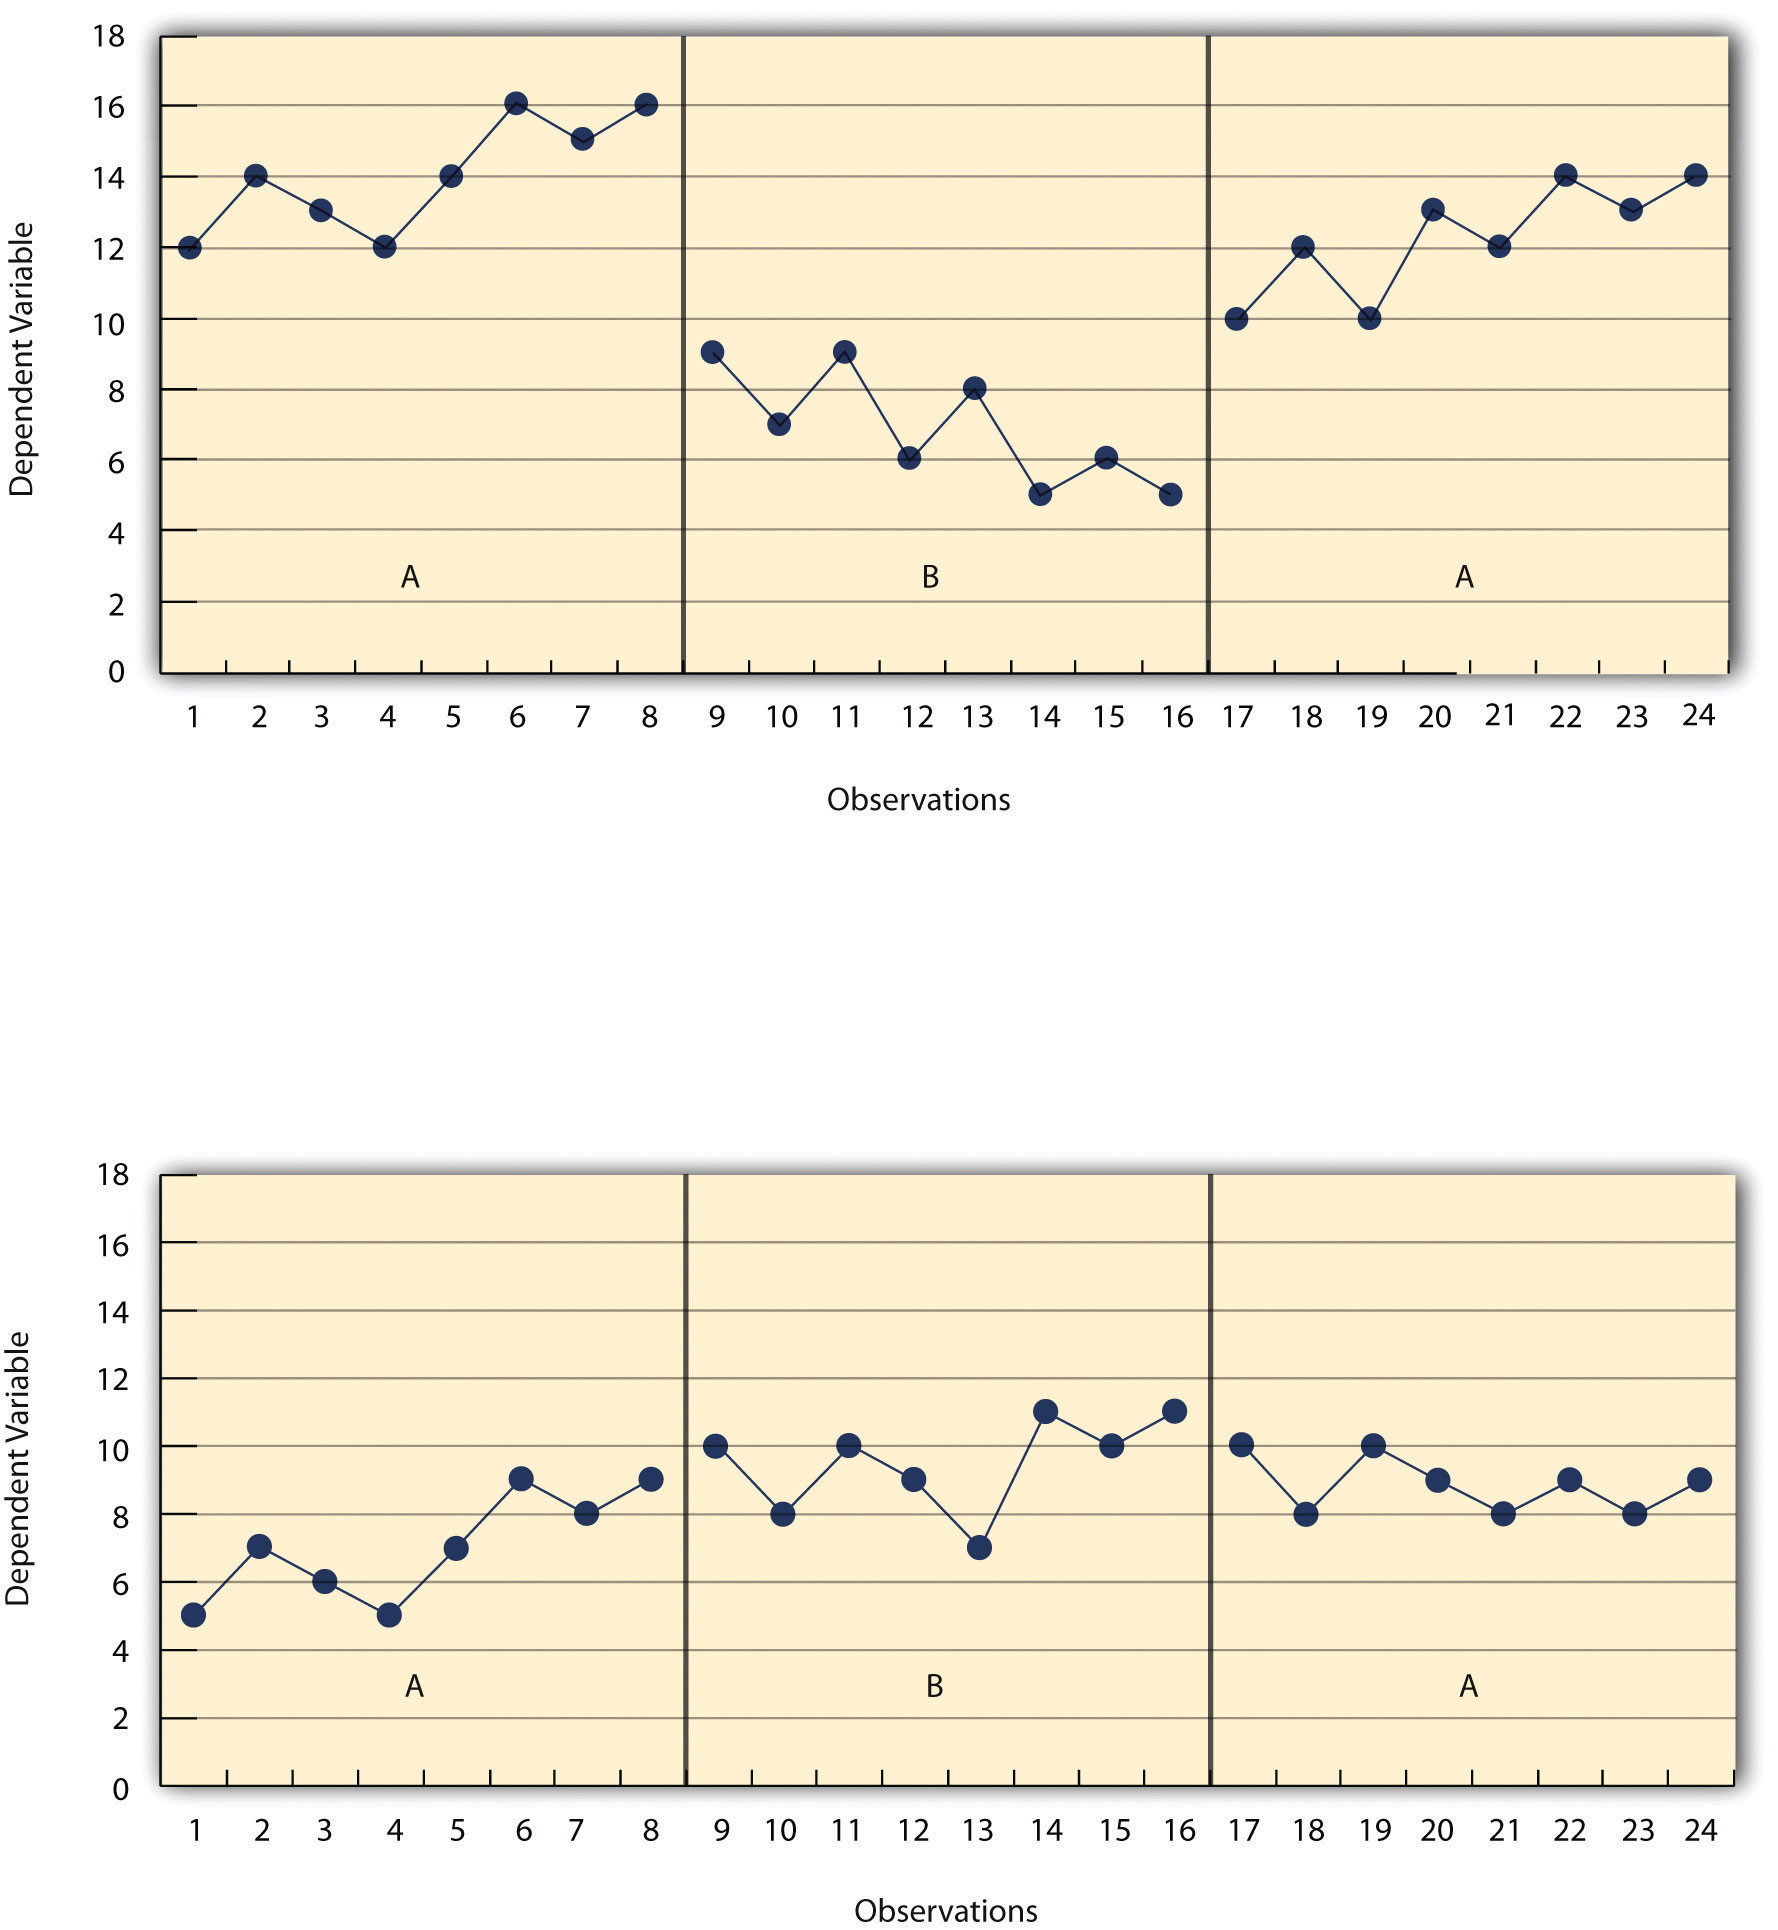 Visual inspection of the data suggests an effective treatment in the top panel but an ineffective treatment in the bottom panel